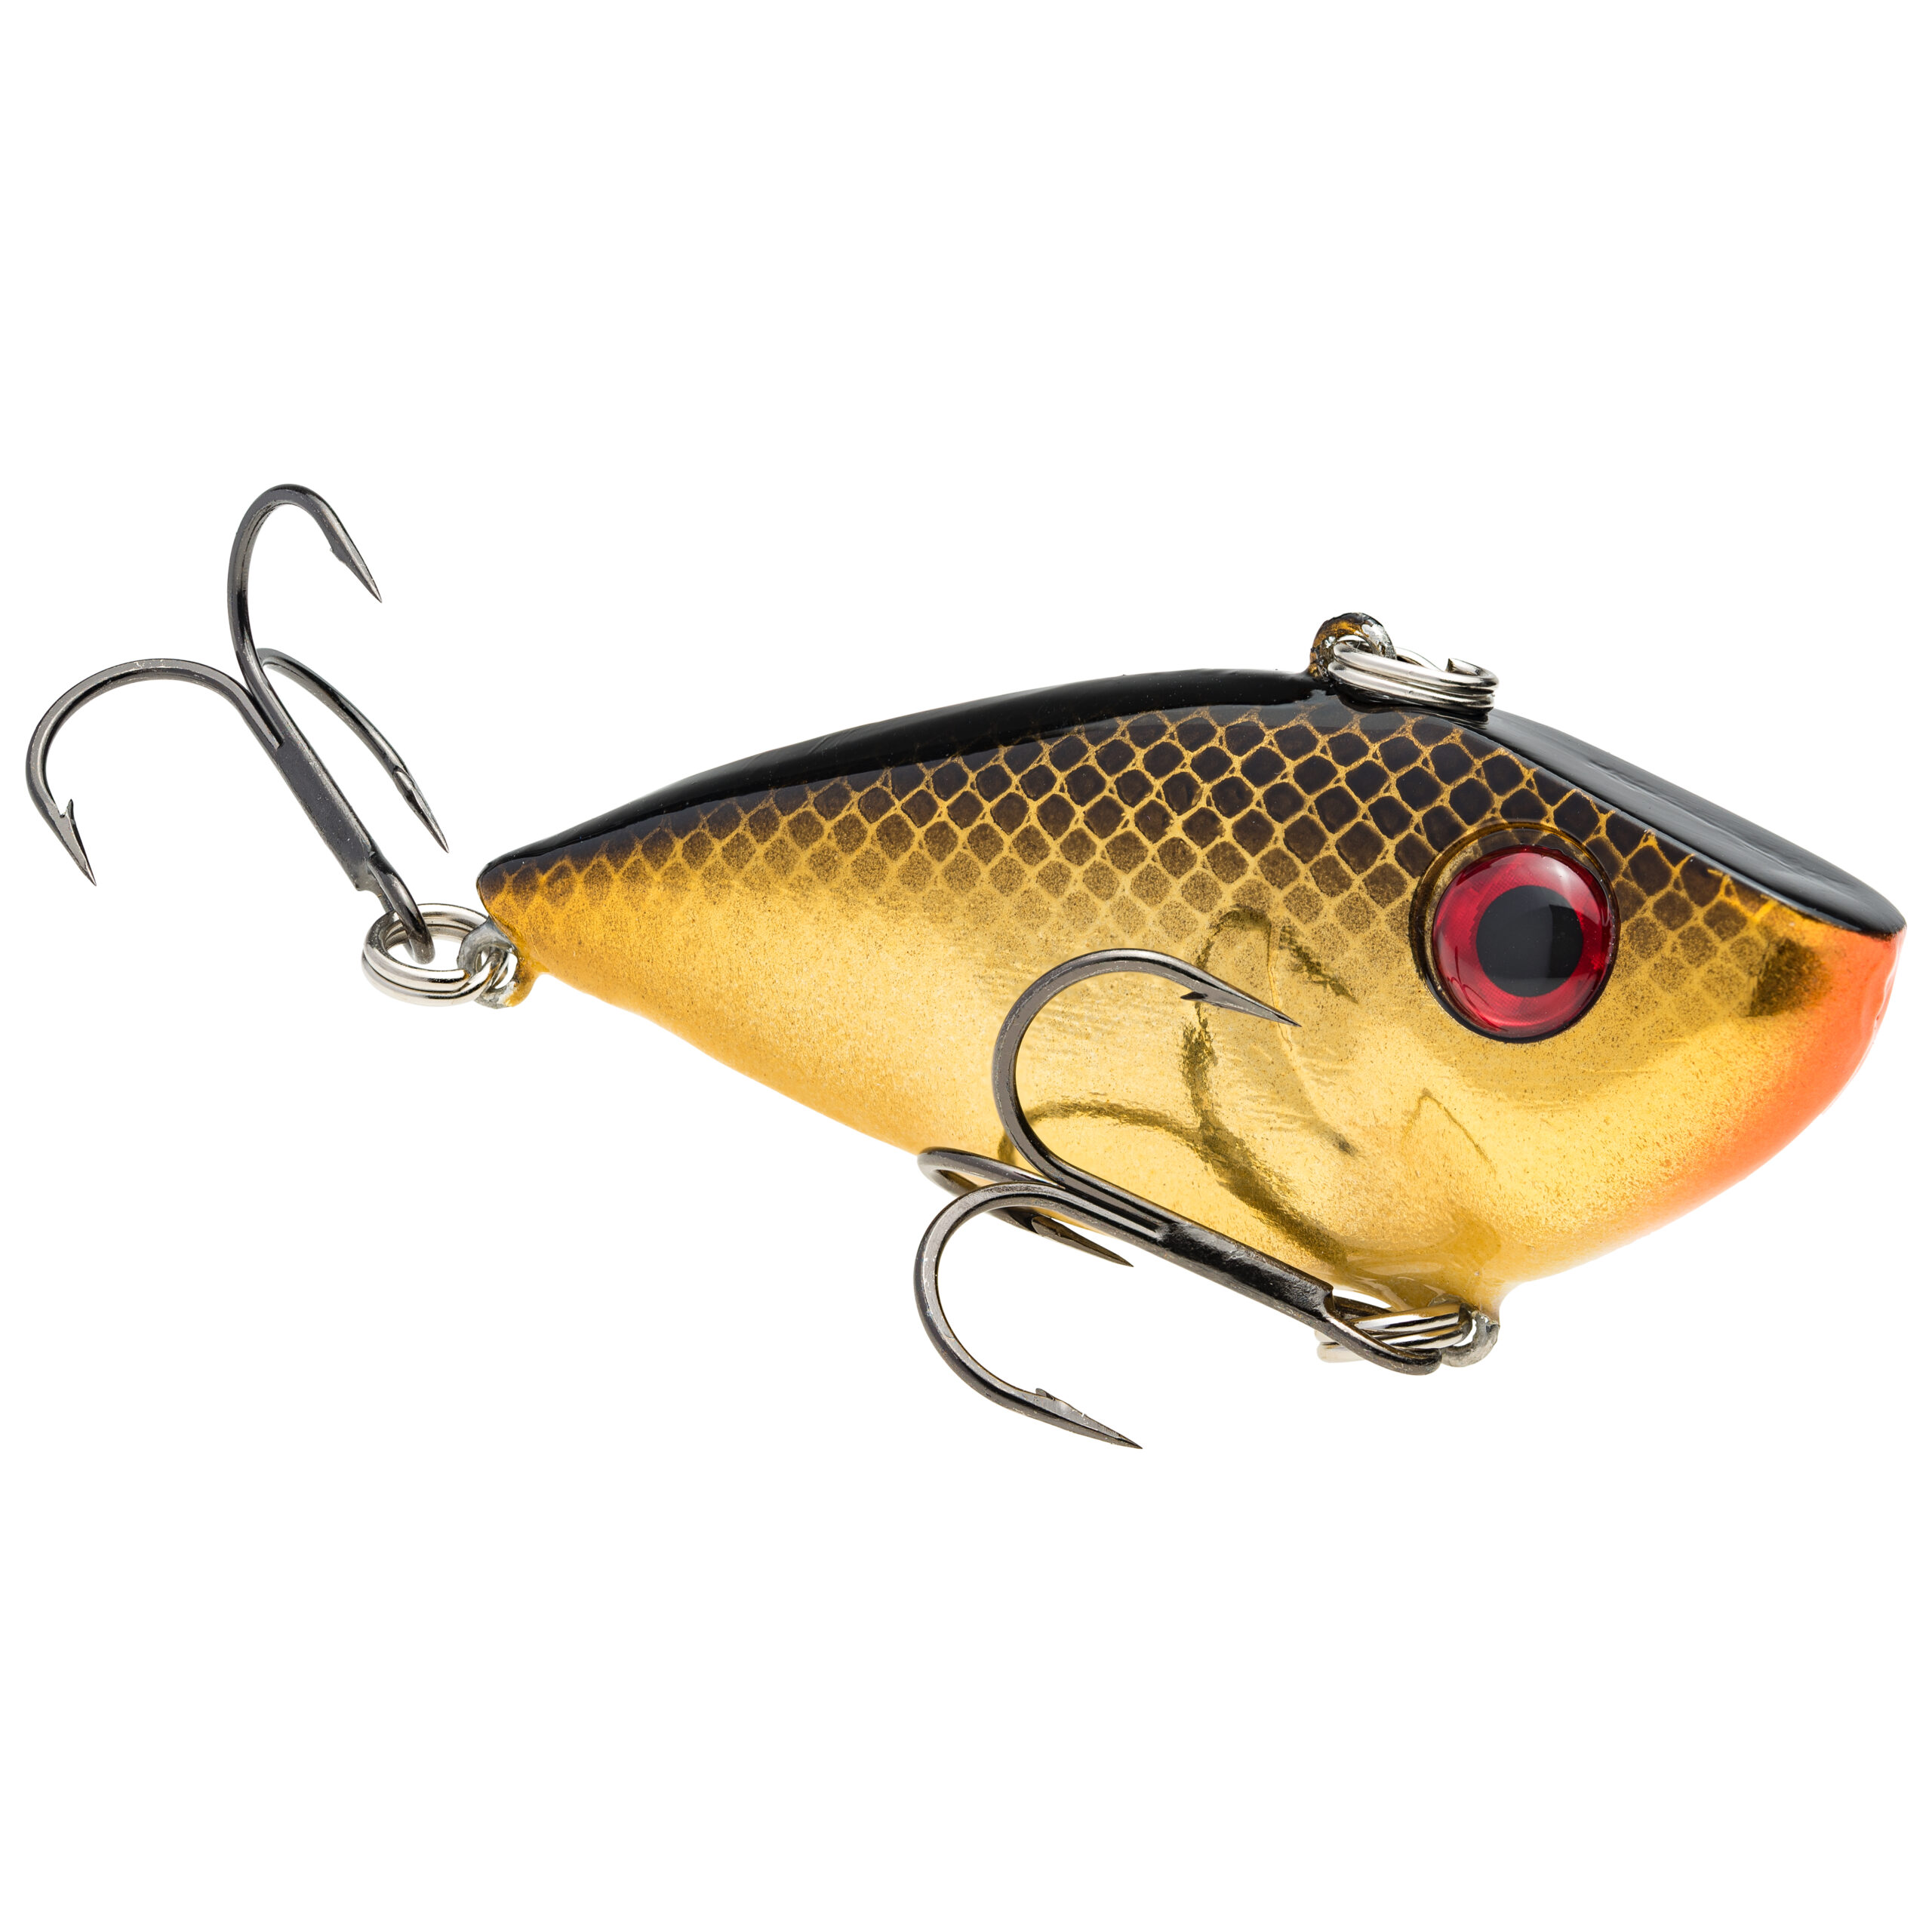 Strike King Lures – Crankbaits – Lipless Rattle Trap – Red Eyed Shad - 1/4oz - REYESD14-406 - Gold Blk Back